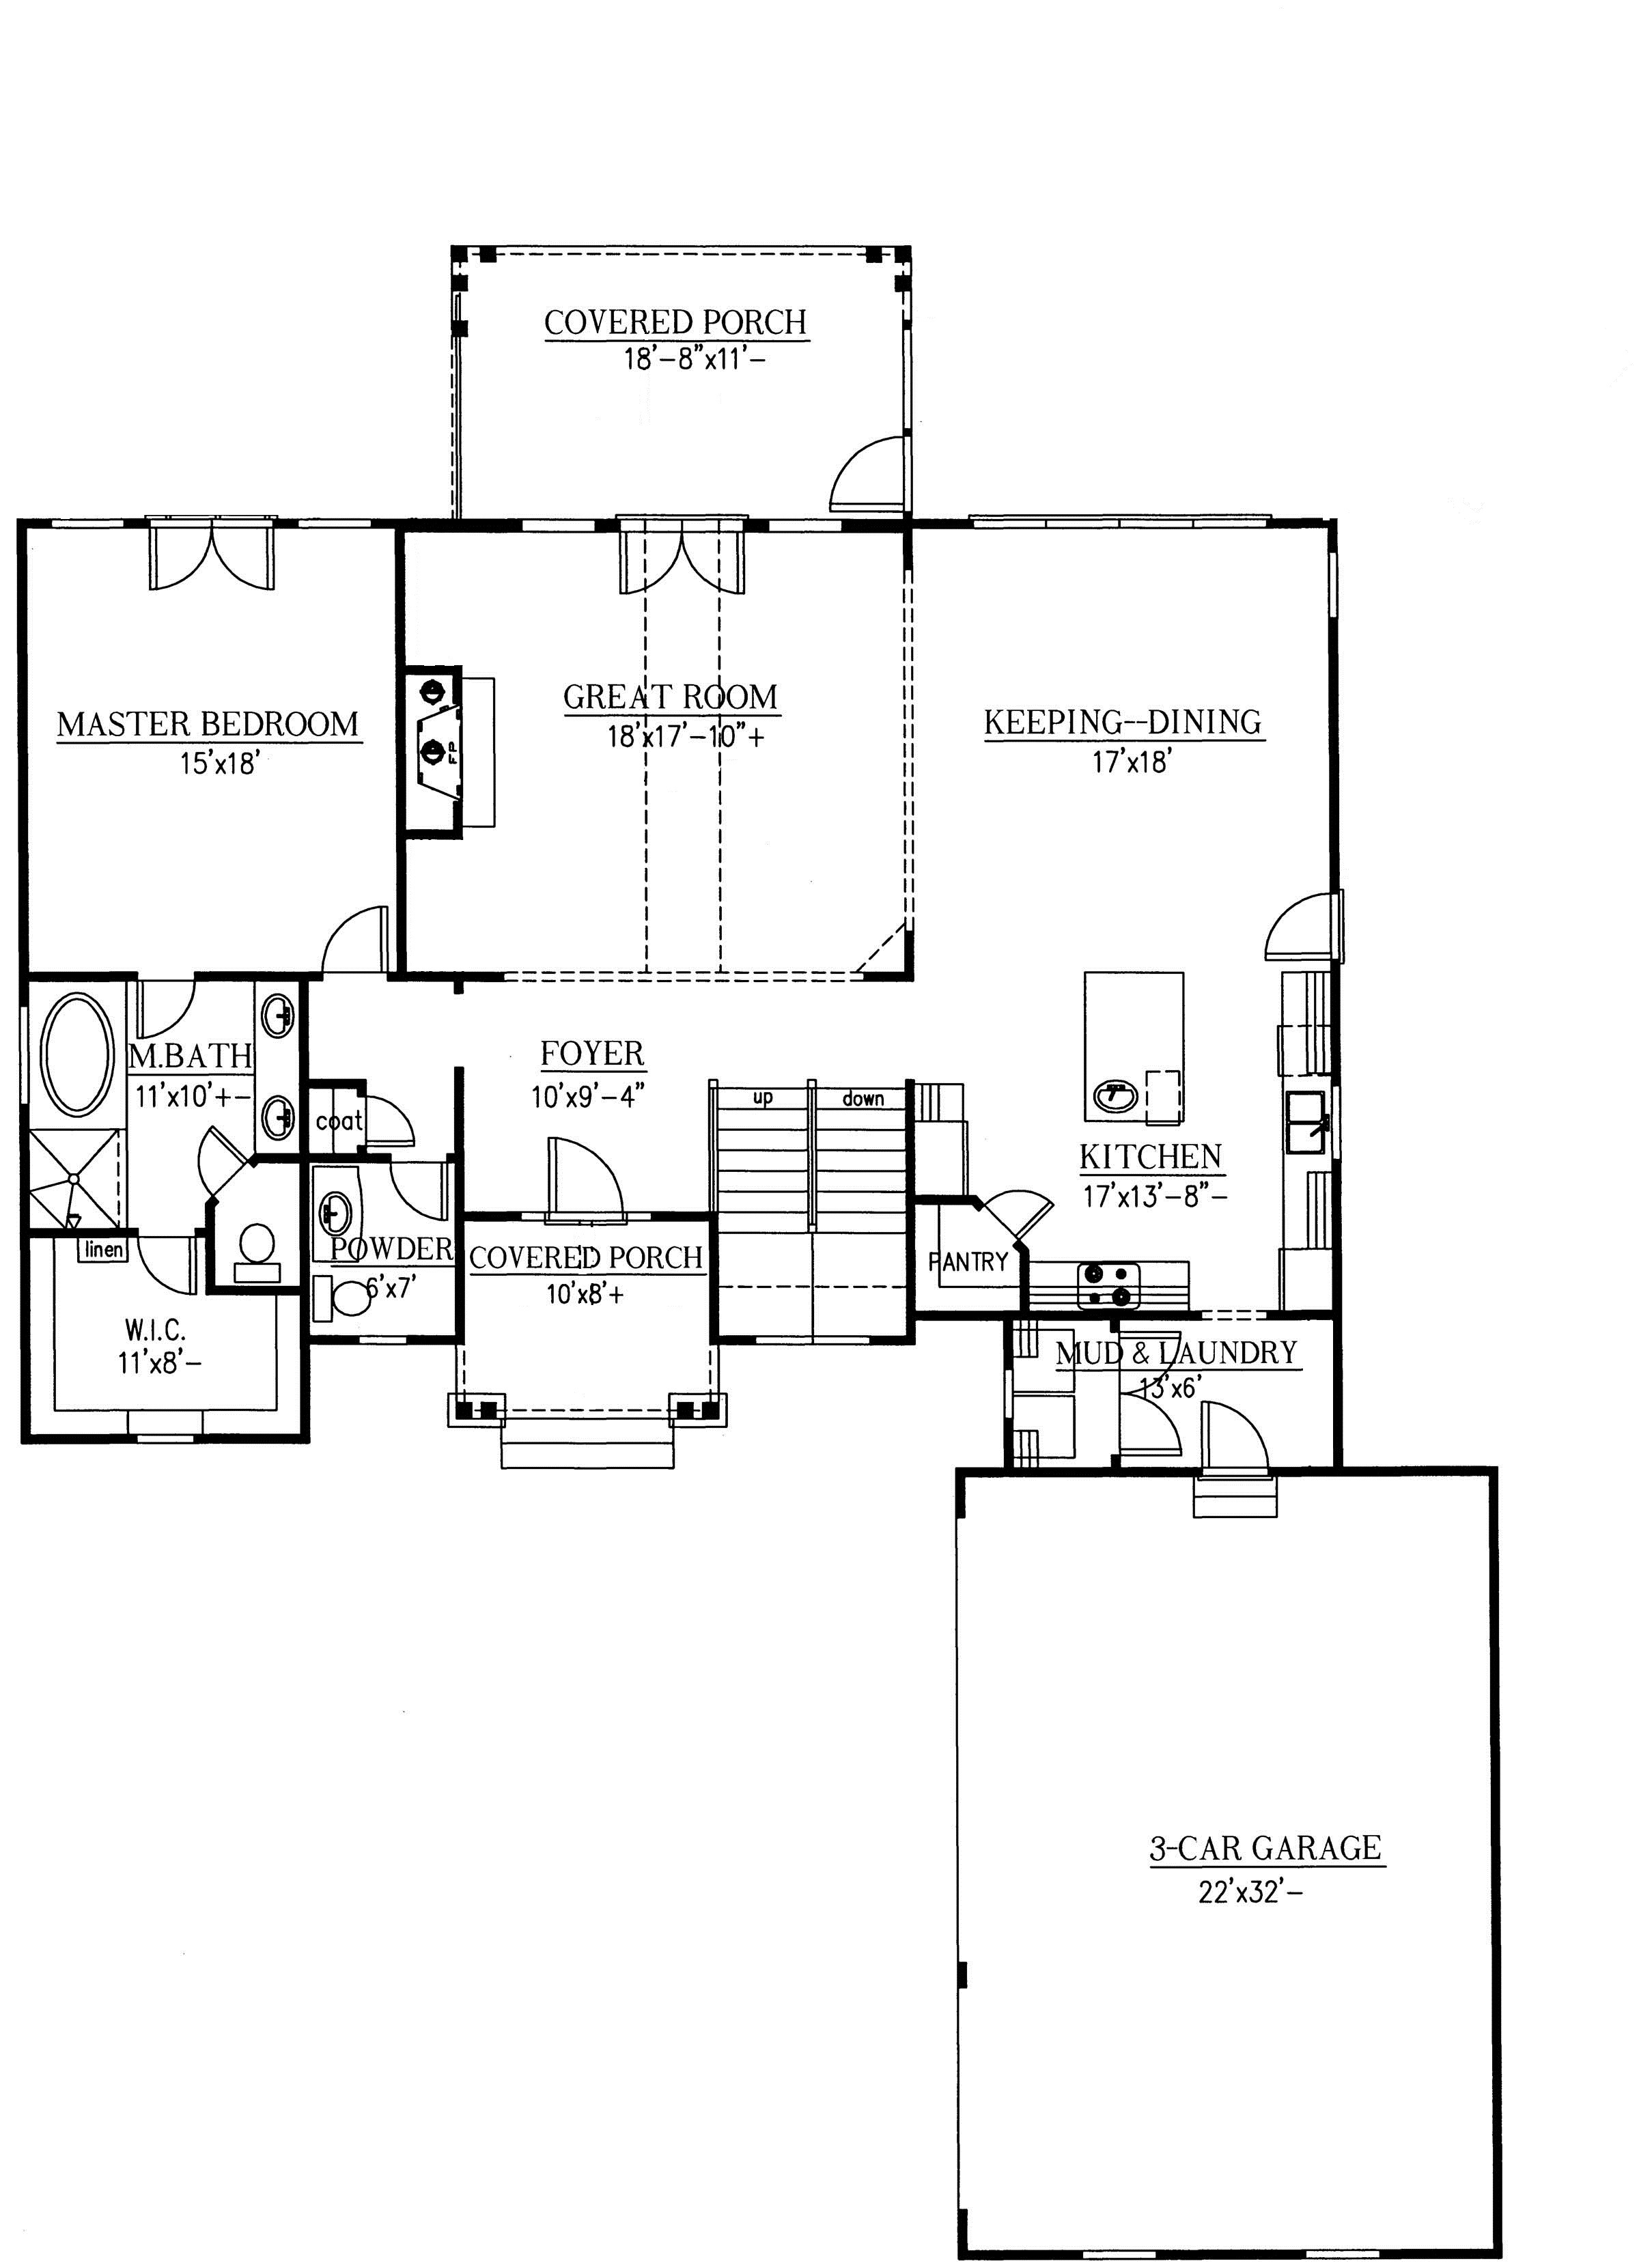 Great room with loft first floor plan sdl custom homes for 2 story great room house plans